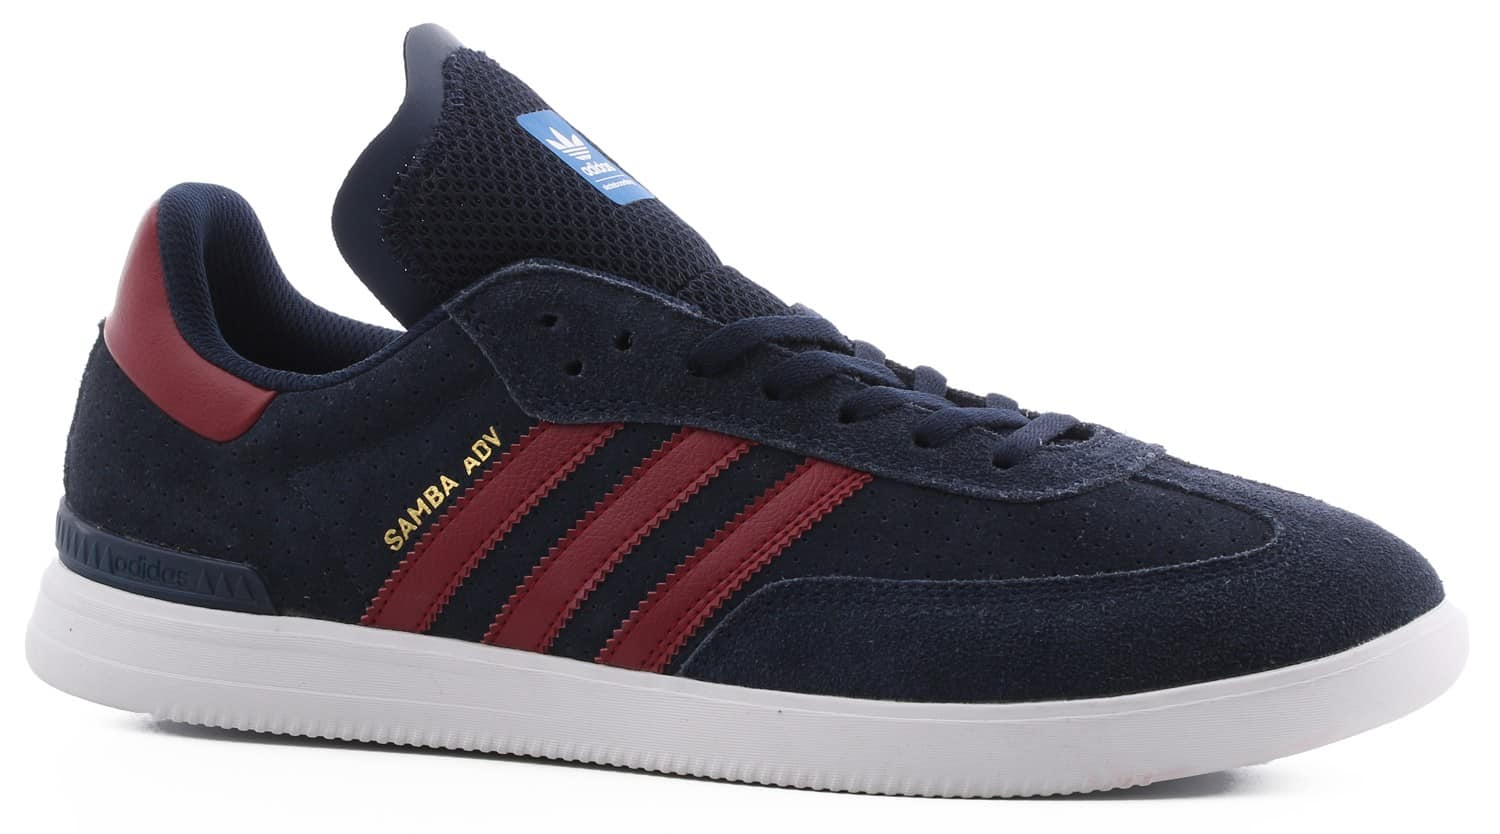 adidas samba adv skate shoes collegiate navy collegiate. Black Bedroom Furniture Sets. Home Design Ideas